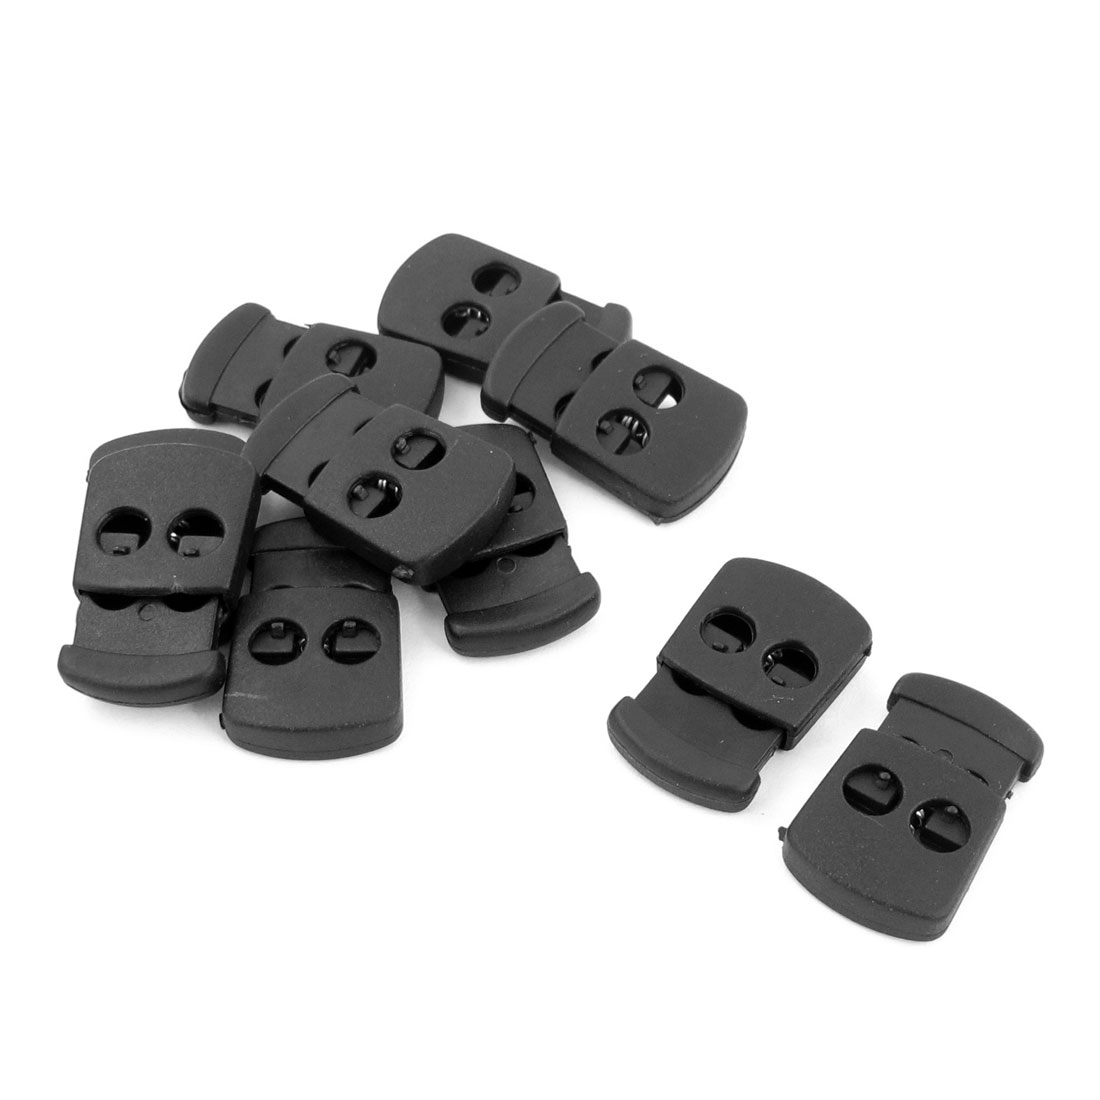 Plastic 5.5mm Dia Dual Hole Spring Bean Cord Locks Ends Stoppers Black 10pcs